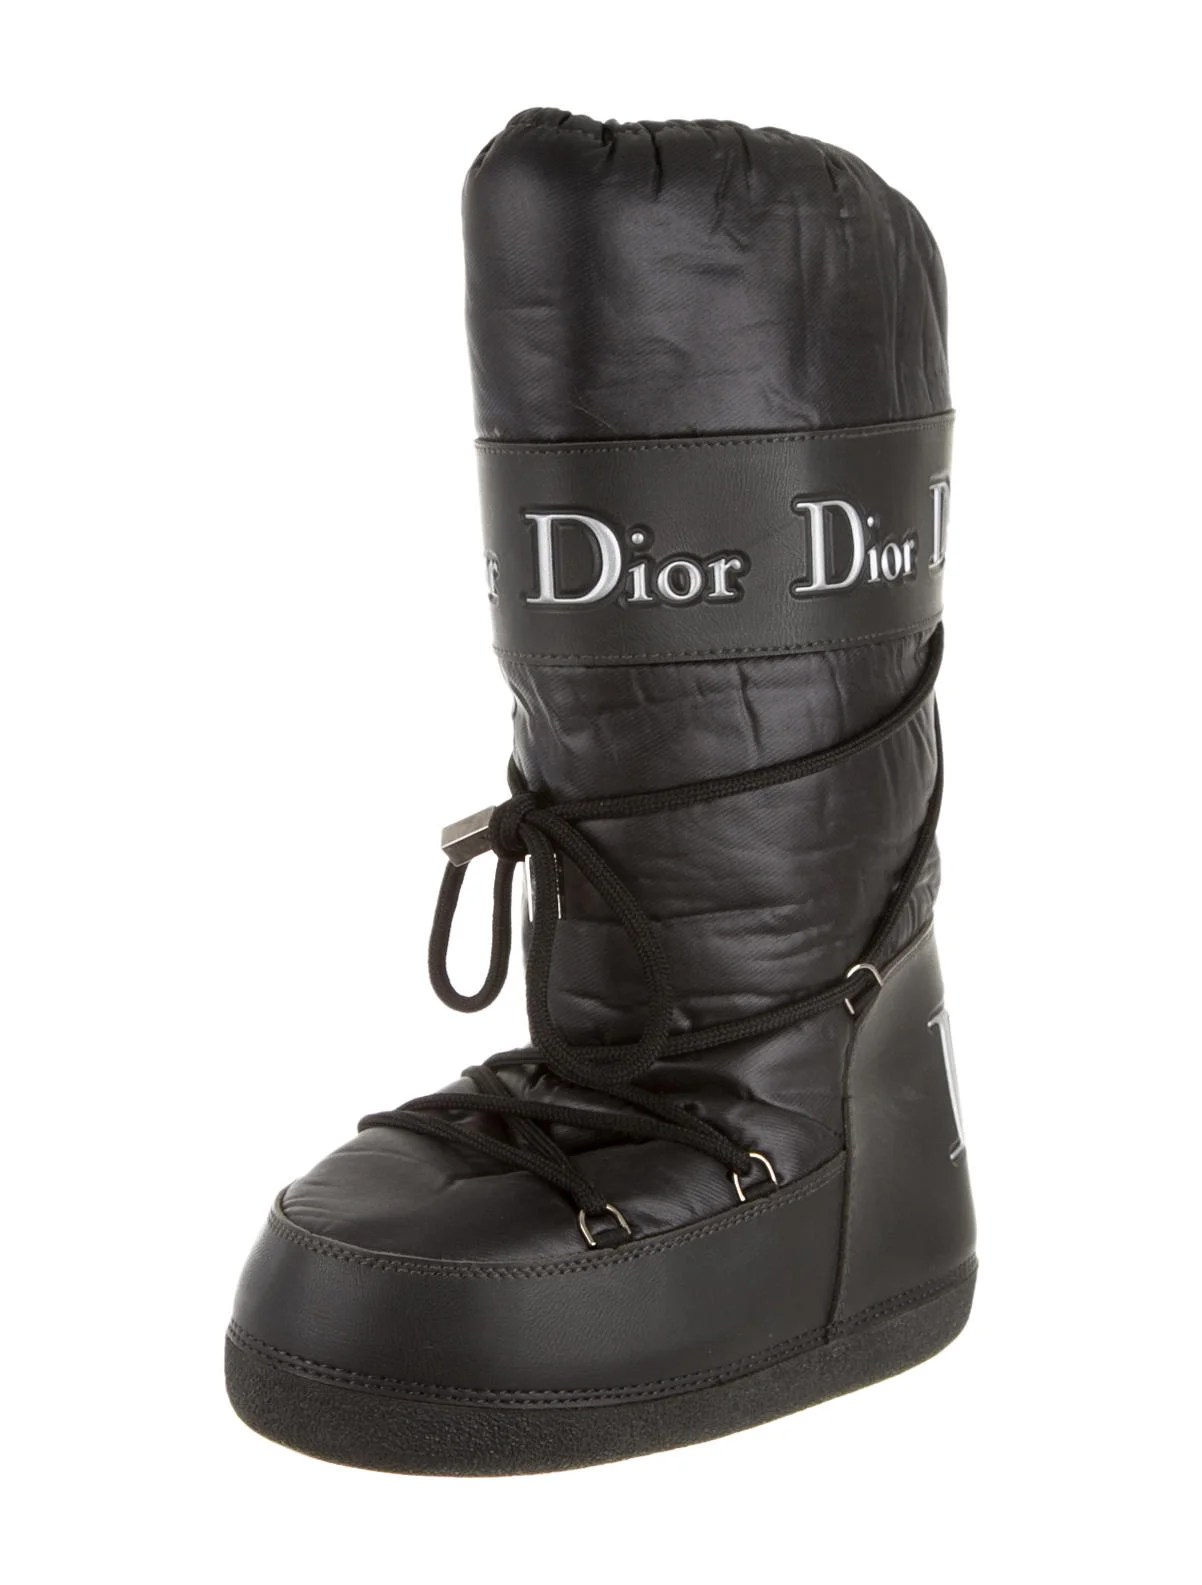 Christian Dior Moon Boots Shoes Chr25181 The Realreal